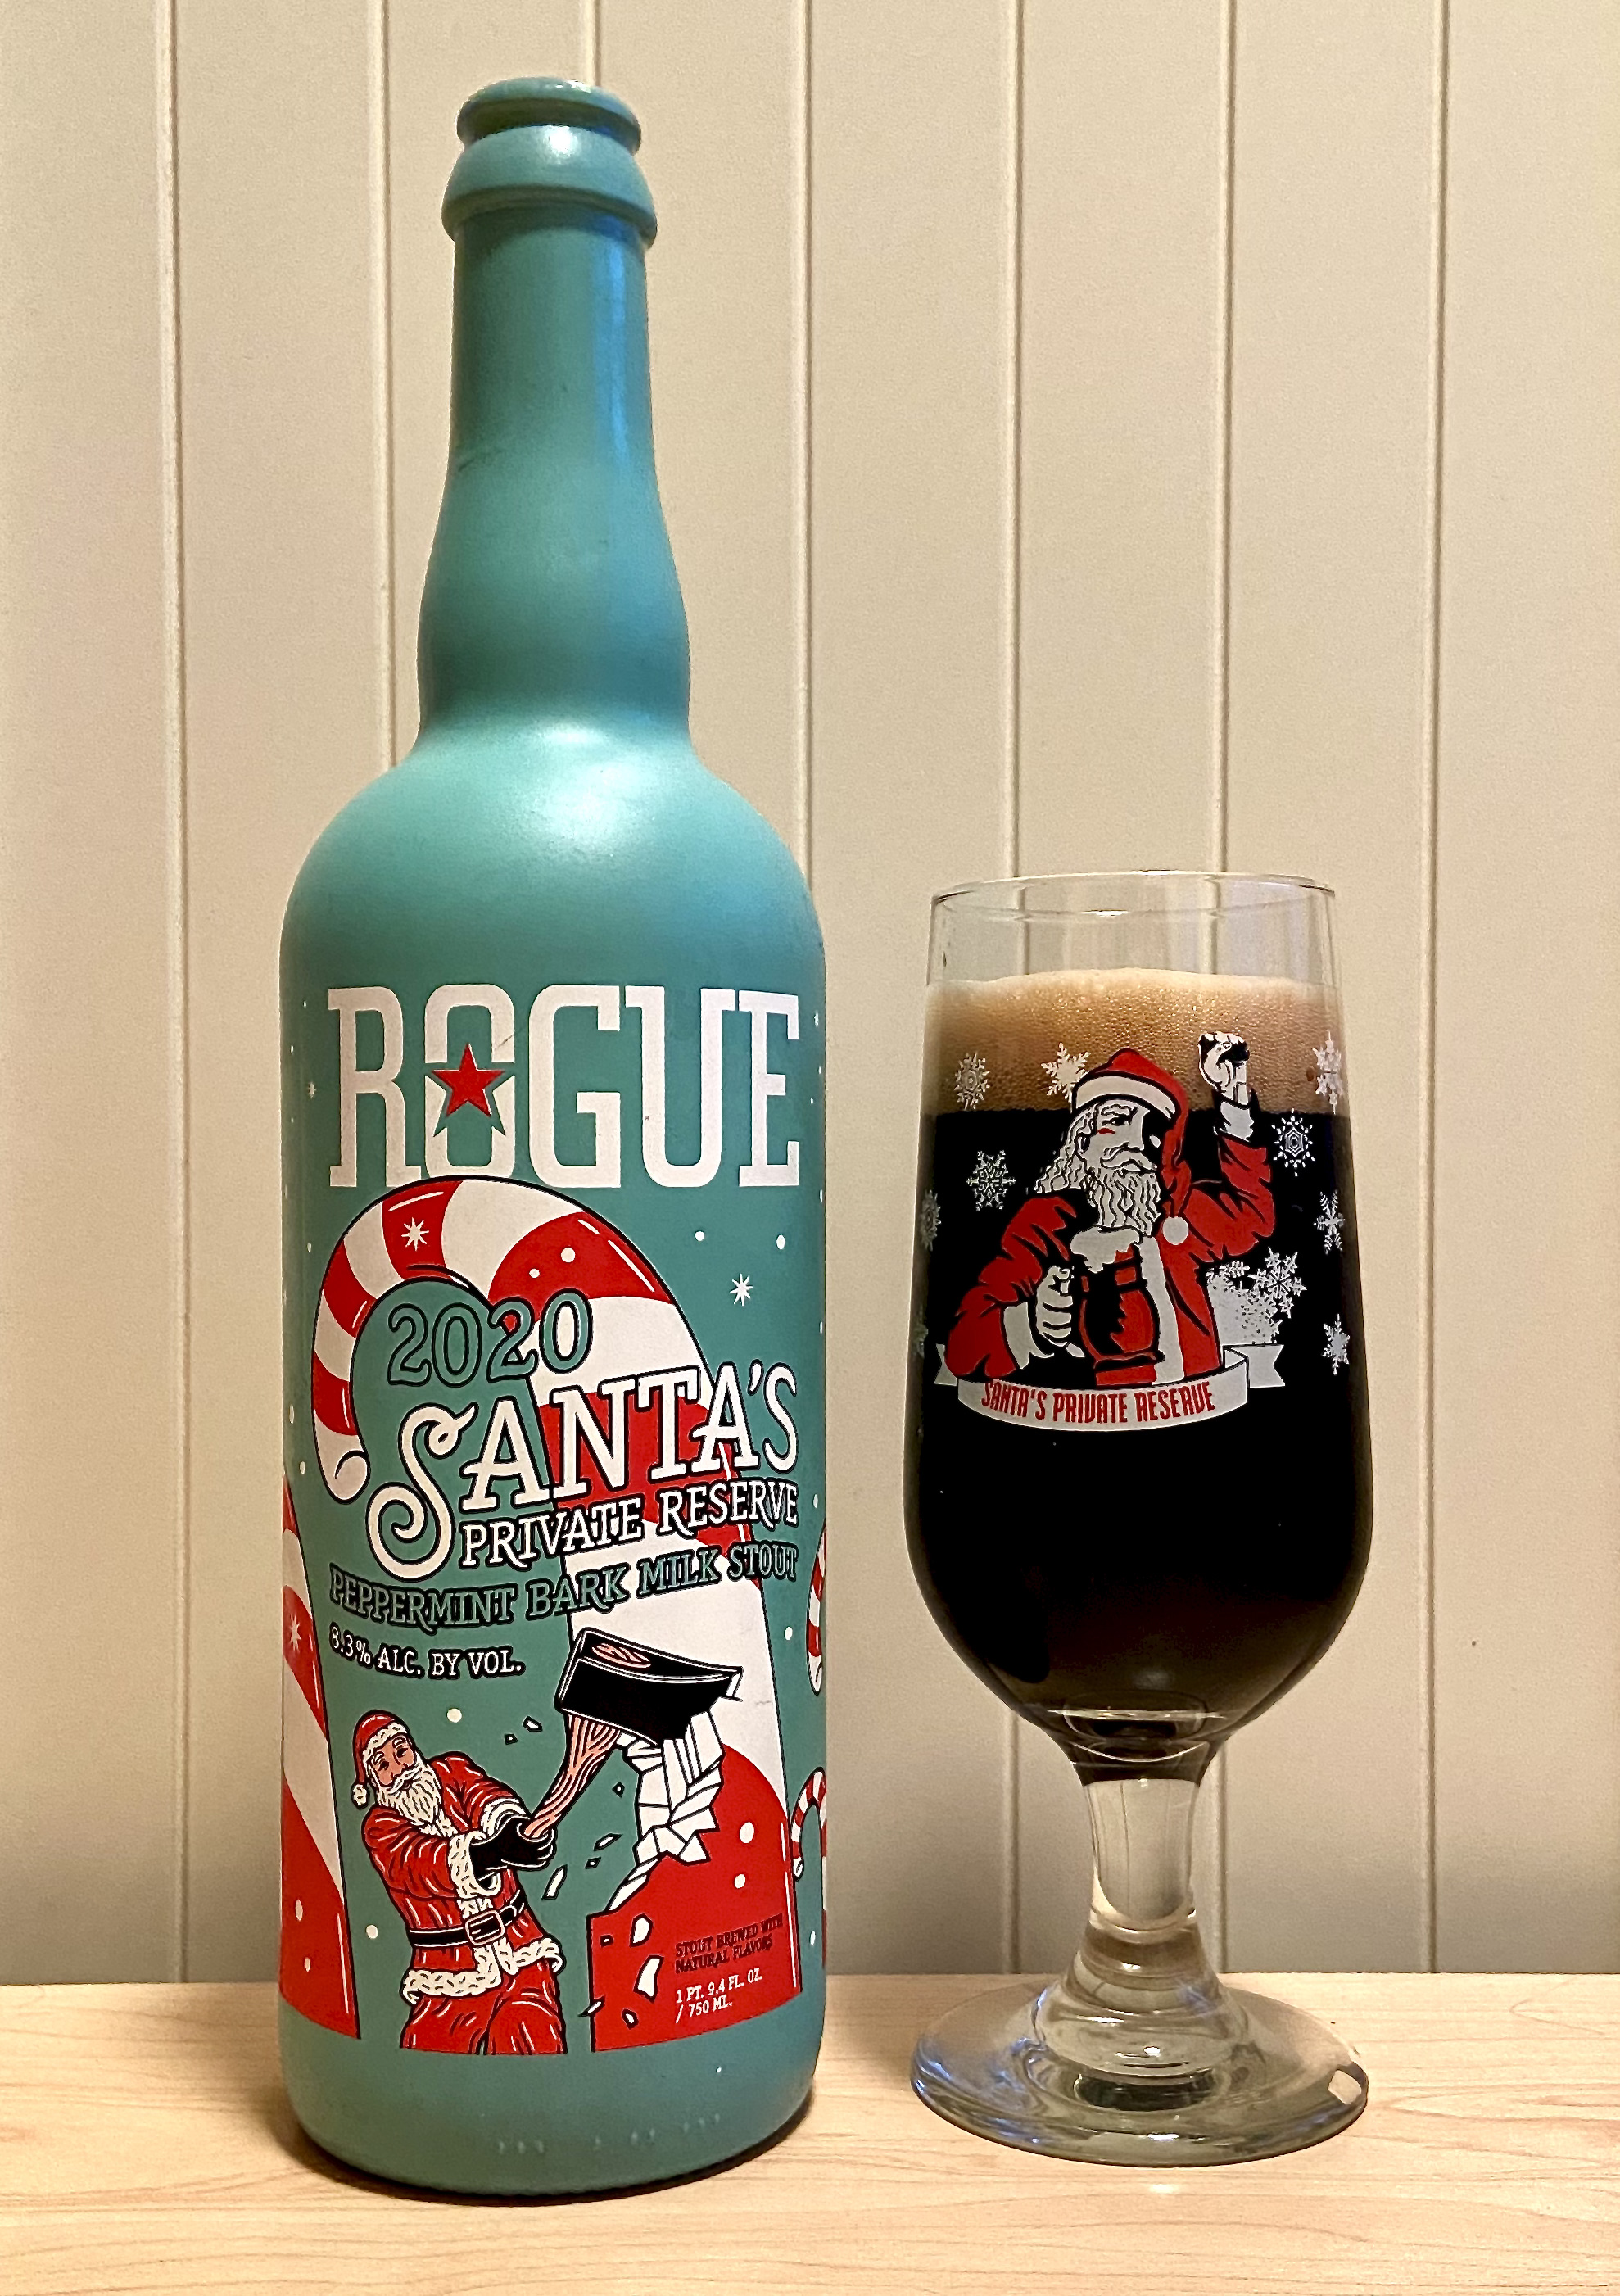 Rogue Ales 2020 Santa's Private Reserve - Peppermint Bark Milk Stout lives up to its name. Its a decadent beer!